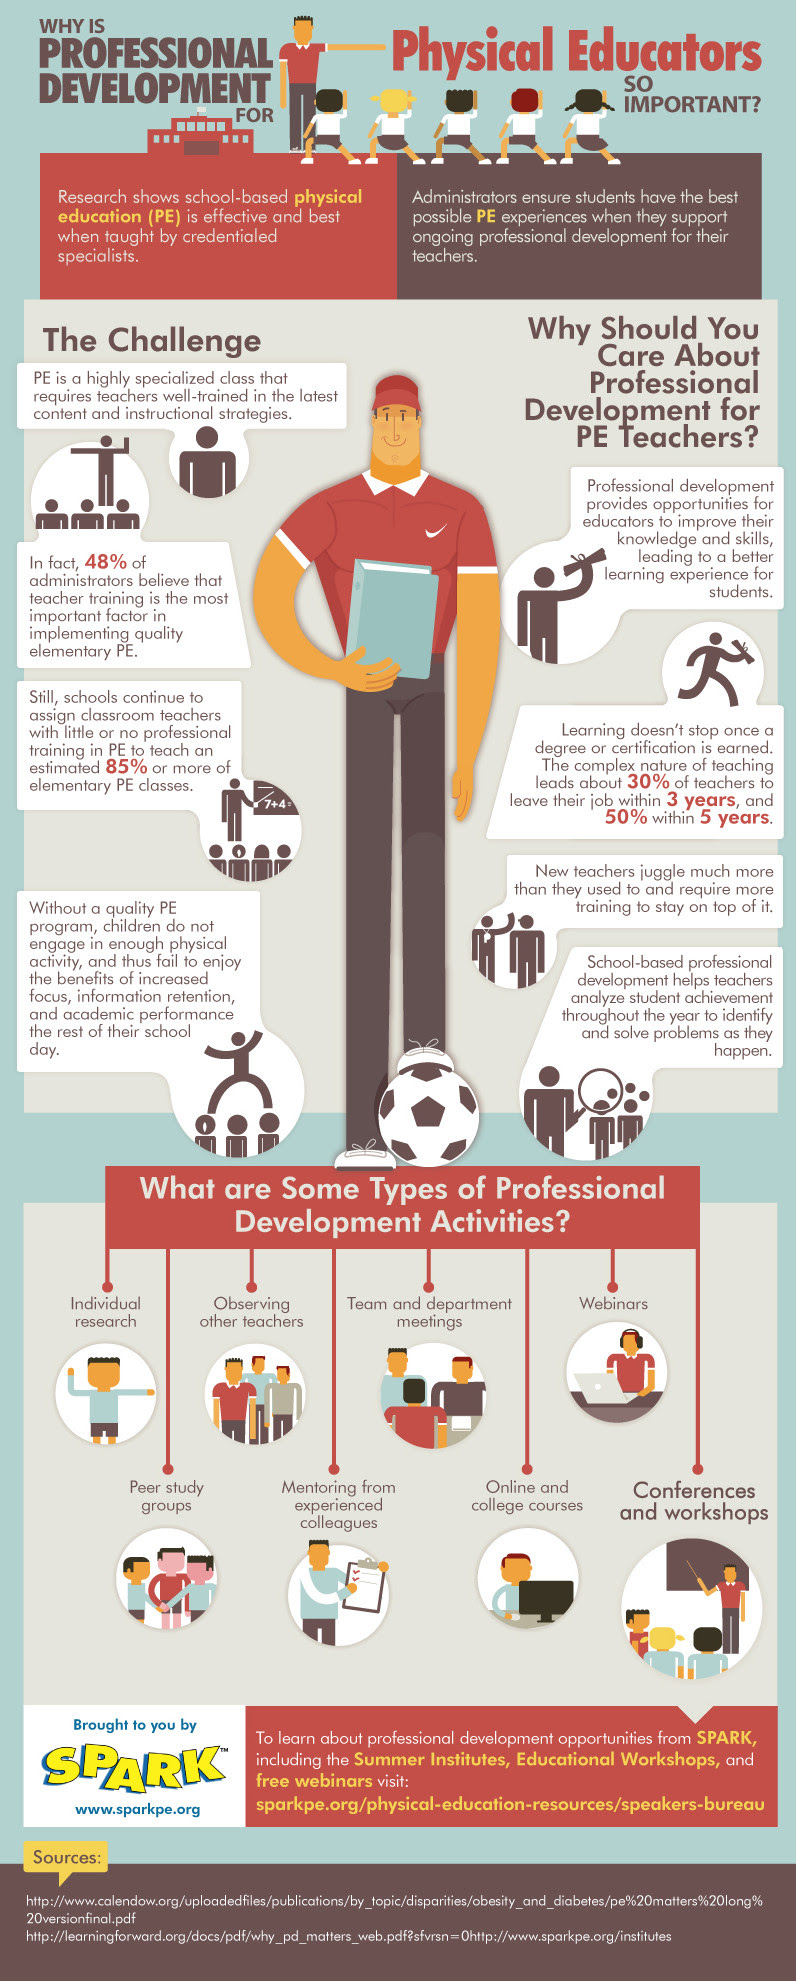 Infographic: Why is Professional Development For Physical Educators So Important? #infographic